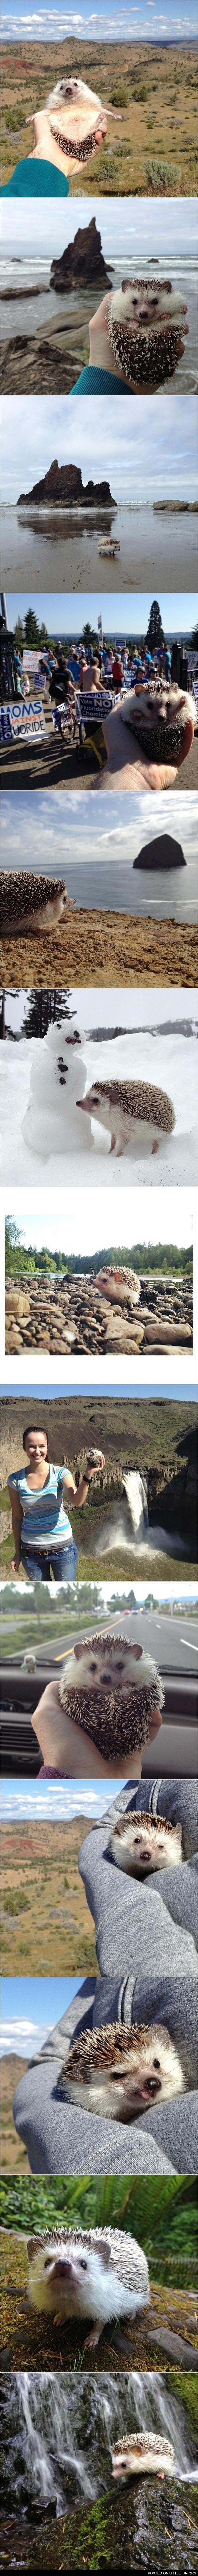 Biddy, the traveling hedgehog